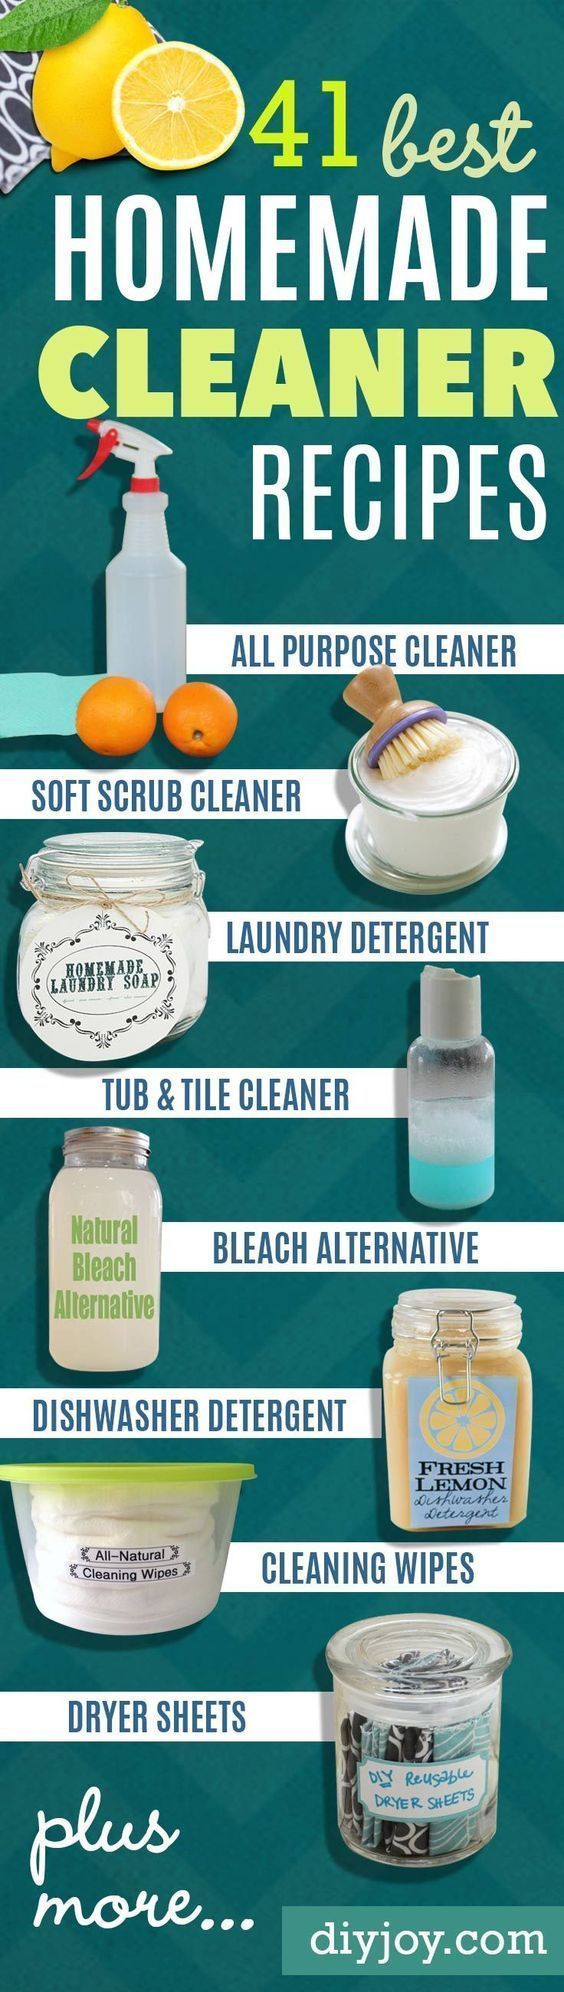 These 10 home tip and hack lists are SO AWESOME! I've found so many GREAT tips for organization, cleaning, AND designing! My house is already looking AMAZING! This is such a great post! I'm definitely pinning for later!